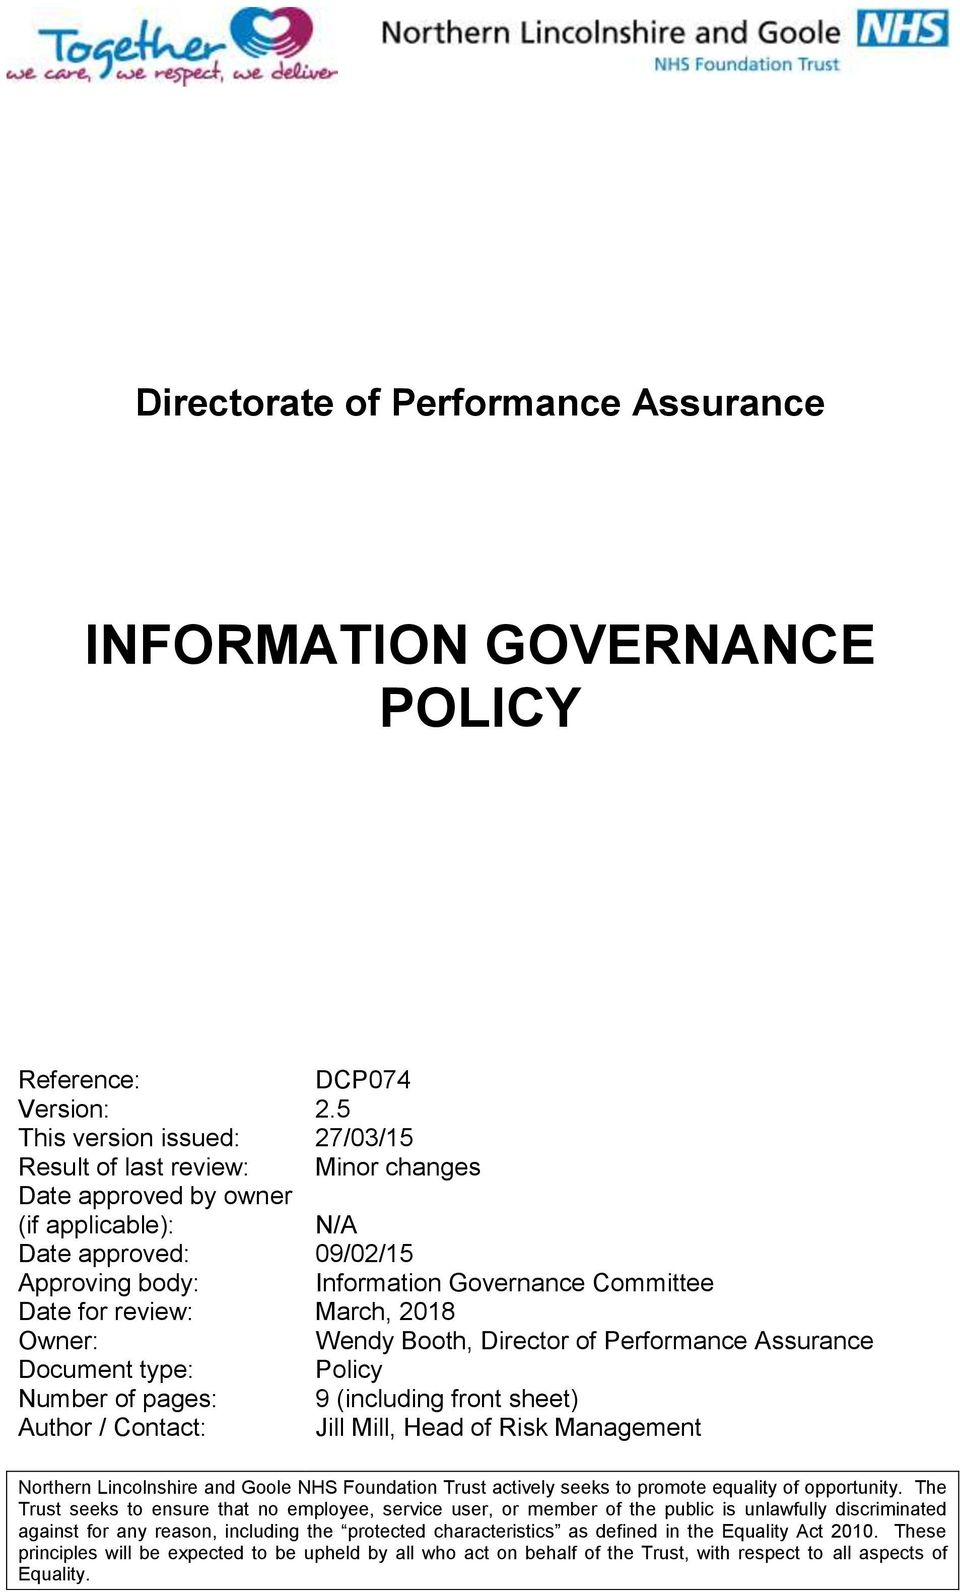 review: March, 2018 Owner: Wendy Booth, Assurance Document type: Policy Number of pages: 9 (including front sheet) Author / Contact: Jill Mill, Head of Risk Management Northern Lincolnshire and Goole